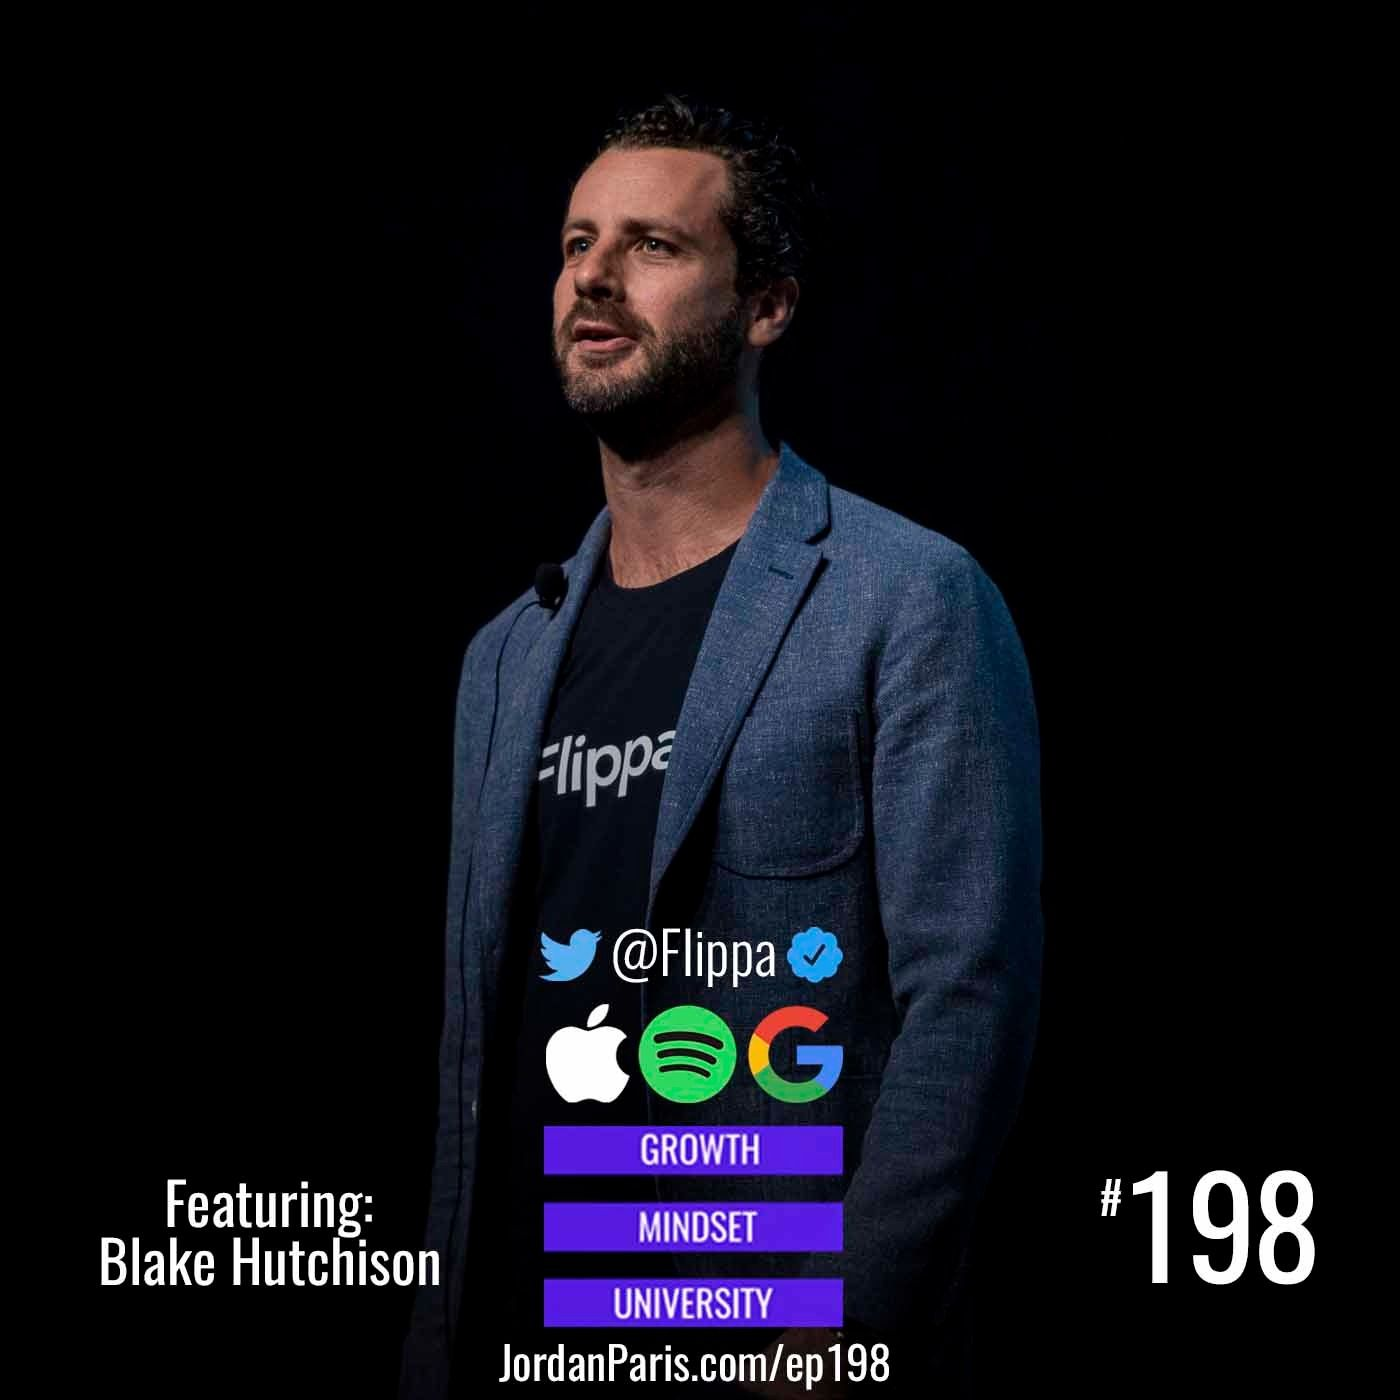 How to Supplement Your Income on the Internet with Blake Hutchison, CEO of Flippa.com